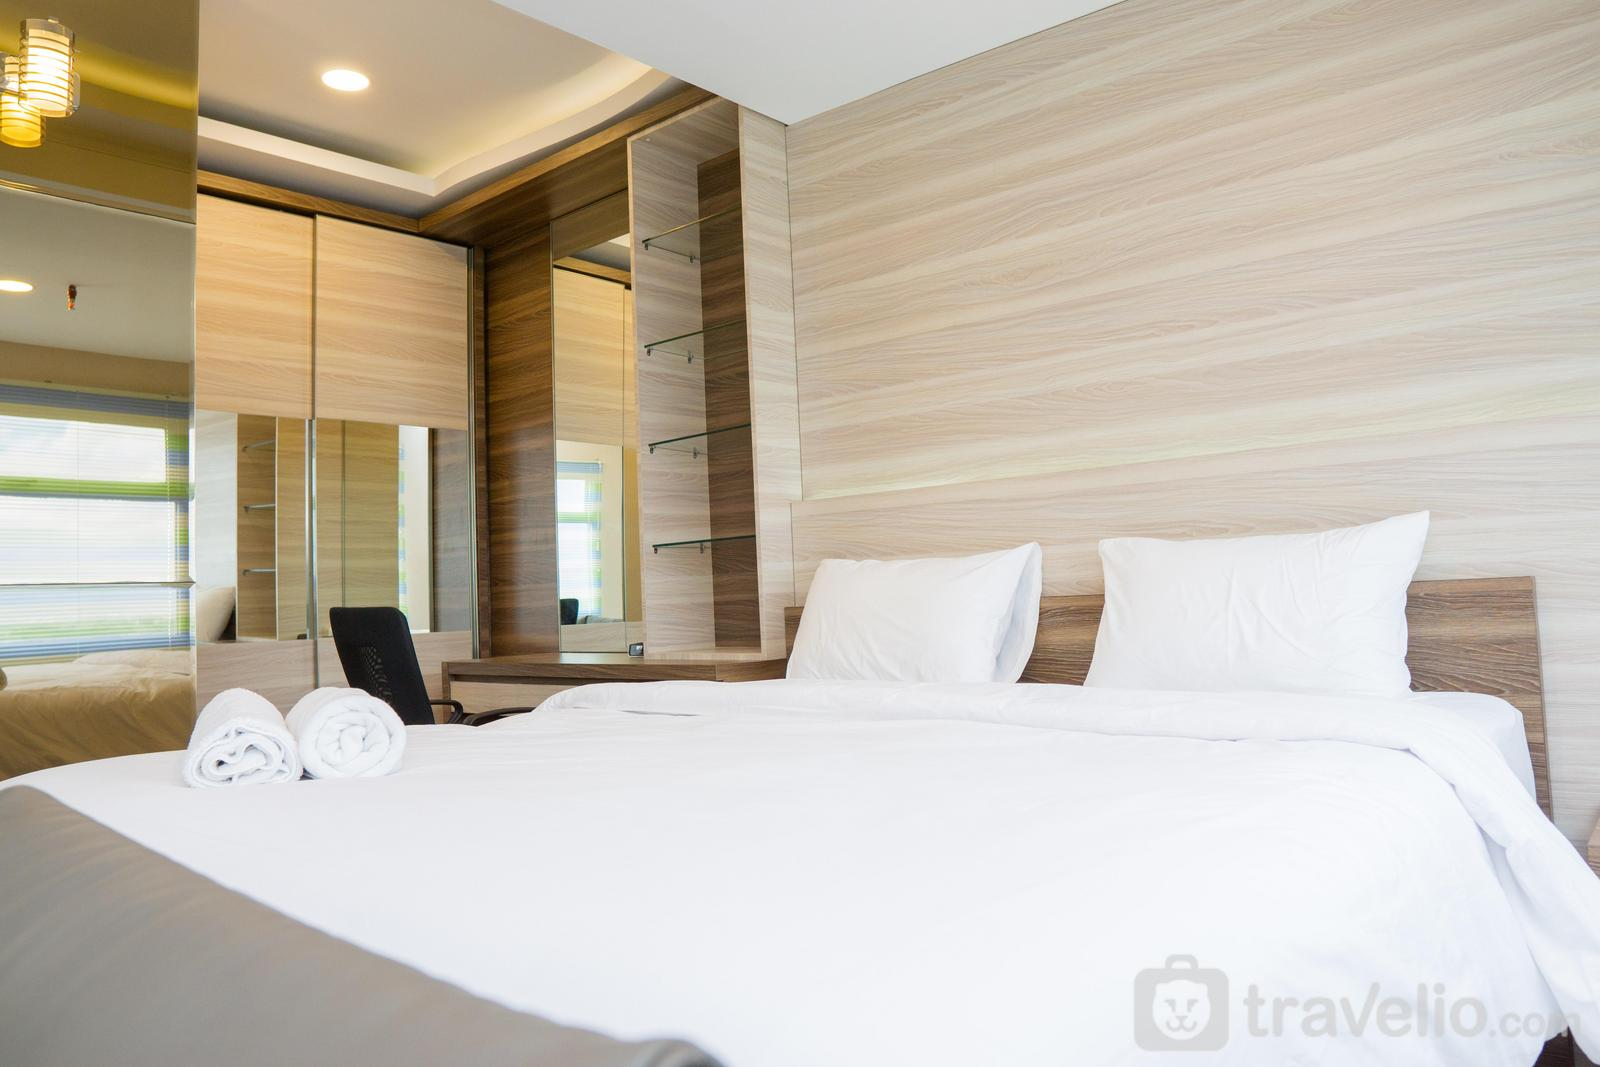 Grand Asia Afrika Apartment - Spacious Studio Apartment at Grand Asia Afrika By Travelio